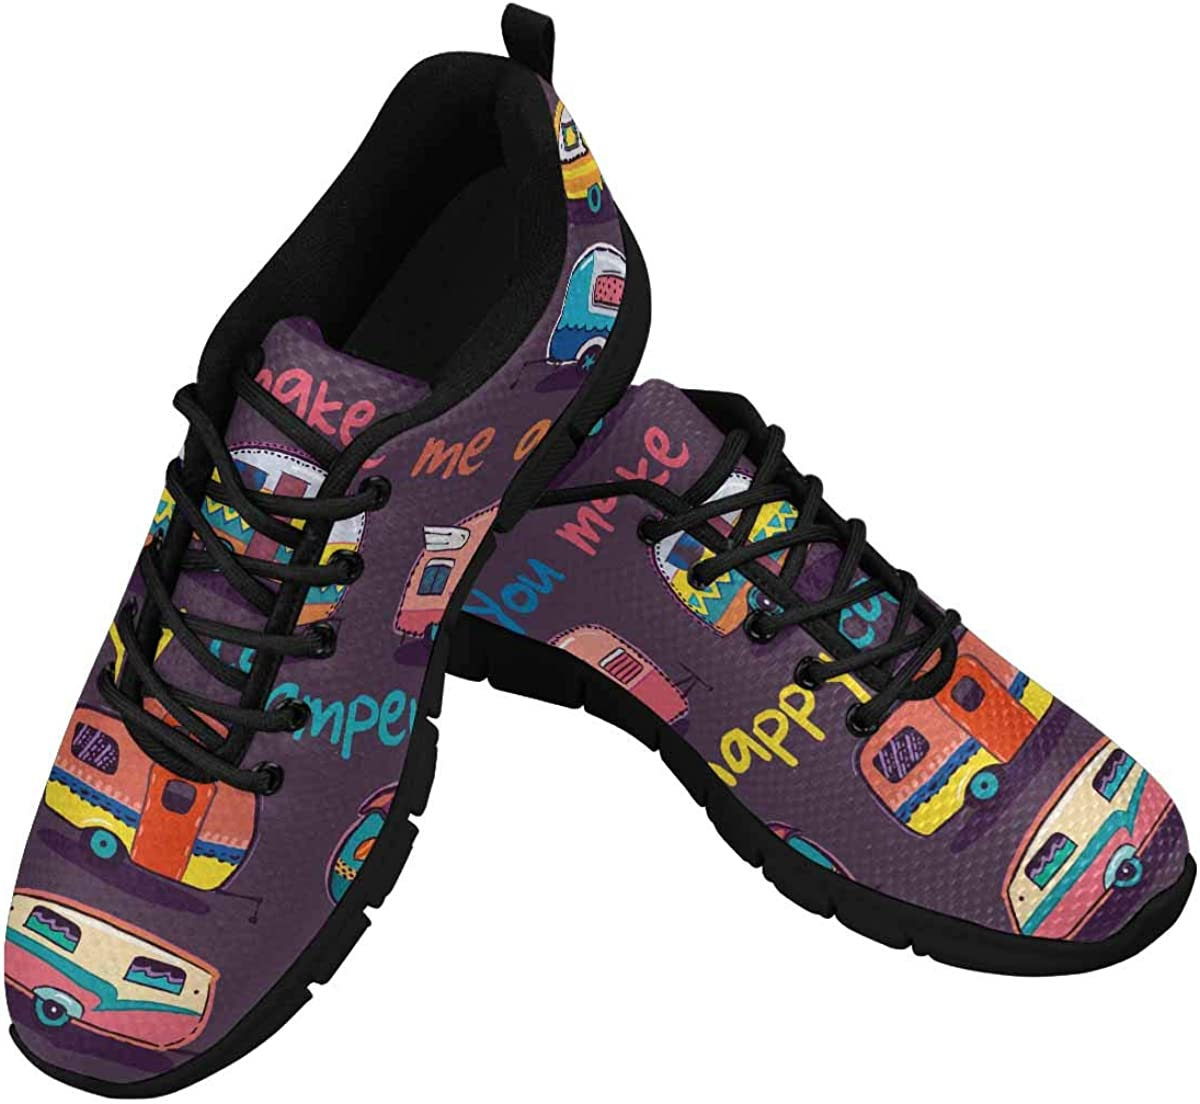 InterestPrint You Make Me a Happy Camper Women's Walking Shoes Lightweight Casual Running Sneakers